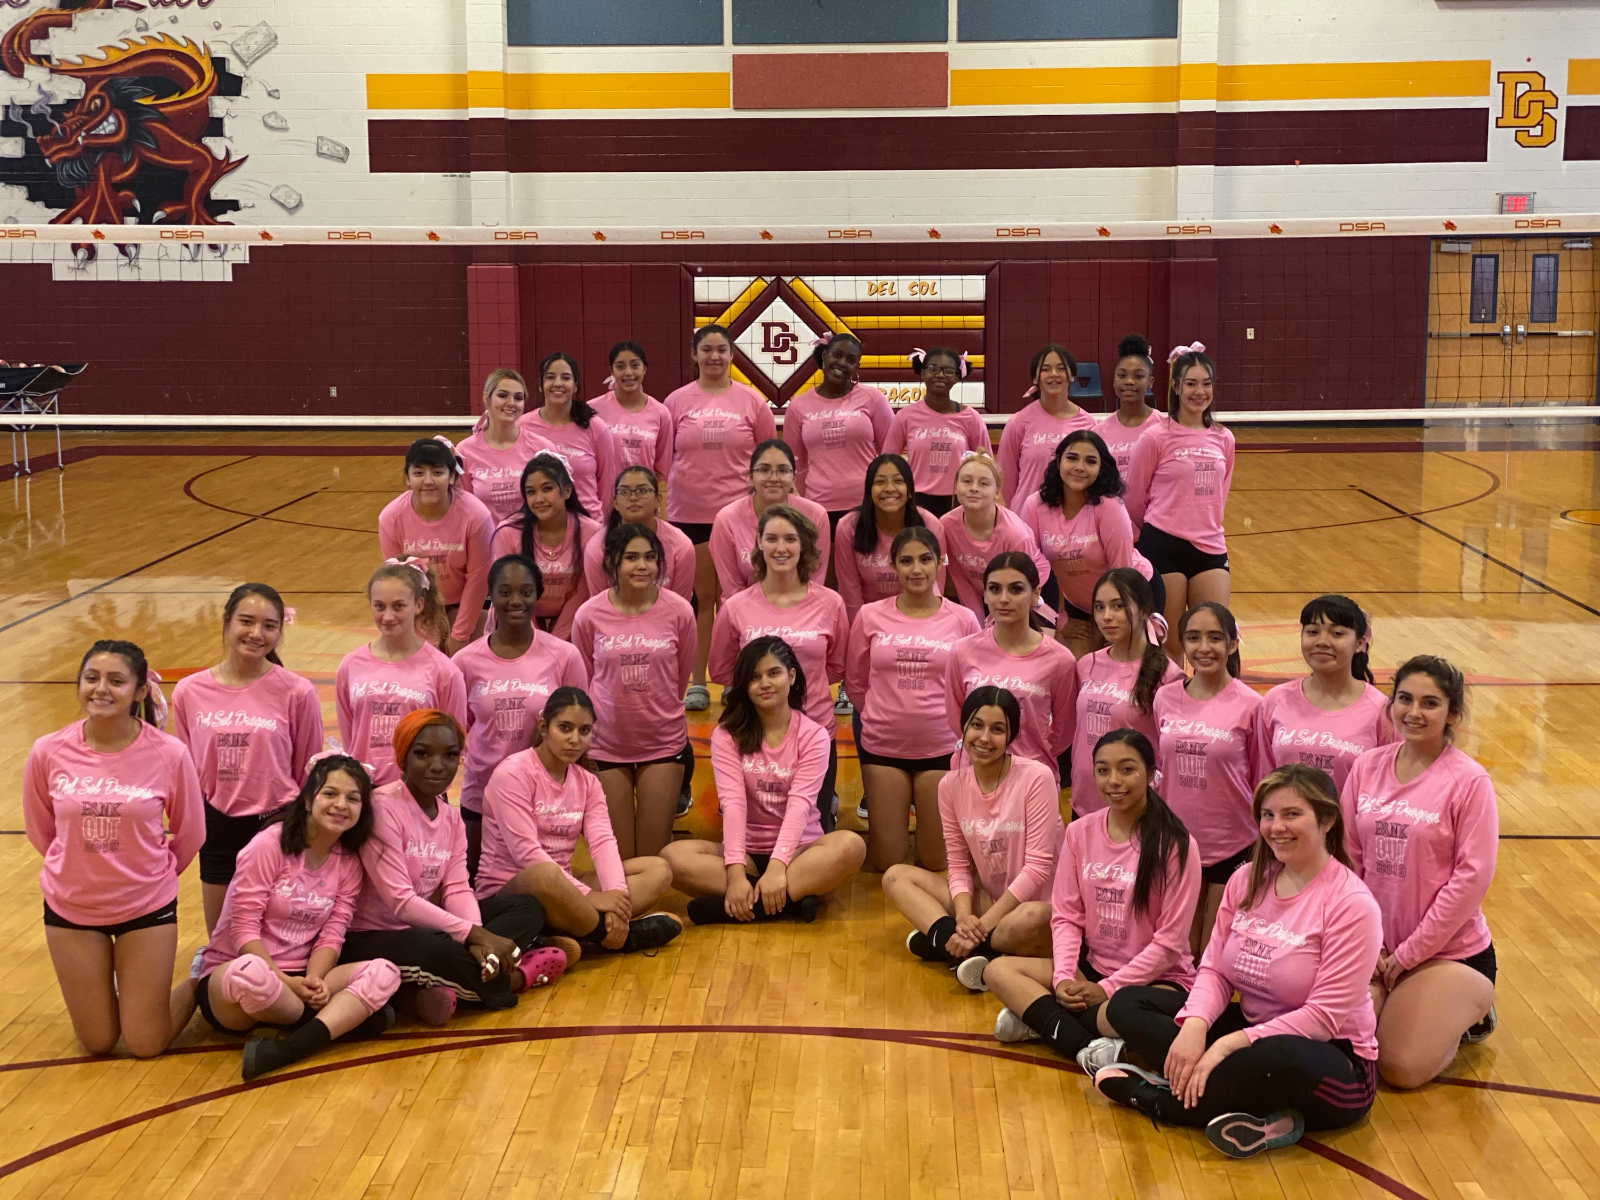 Girl's Volleyball Improved in Their 2019 Season Despite the Failure to Meet Goals